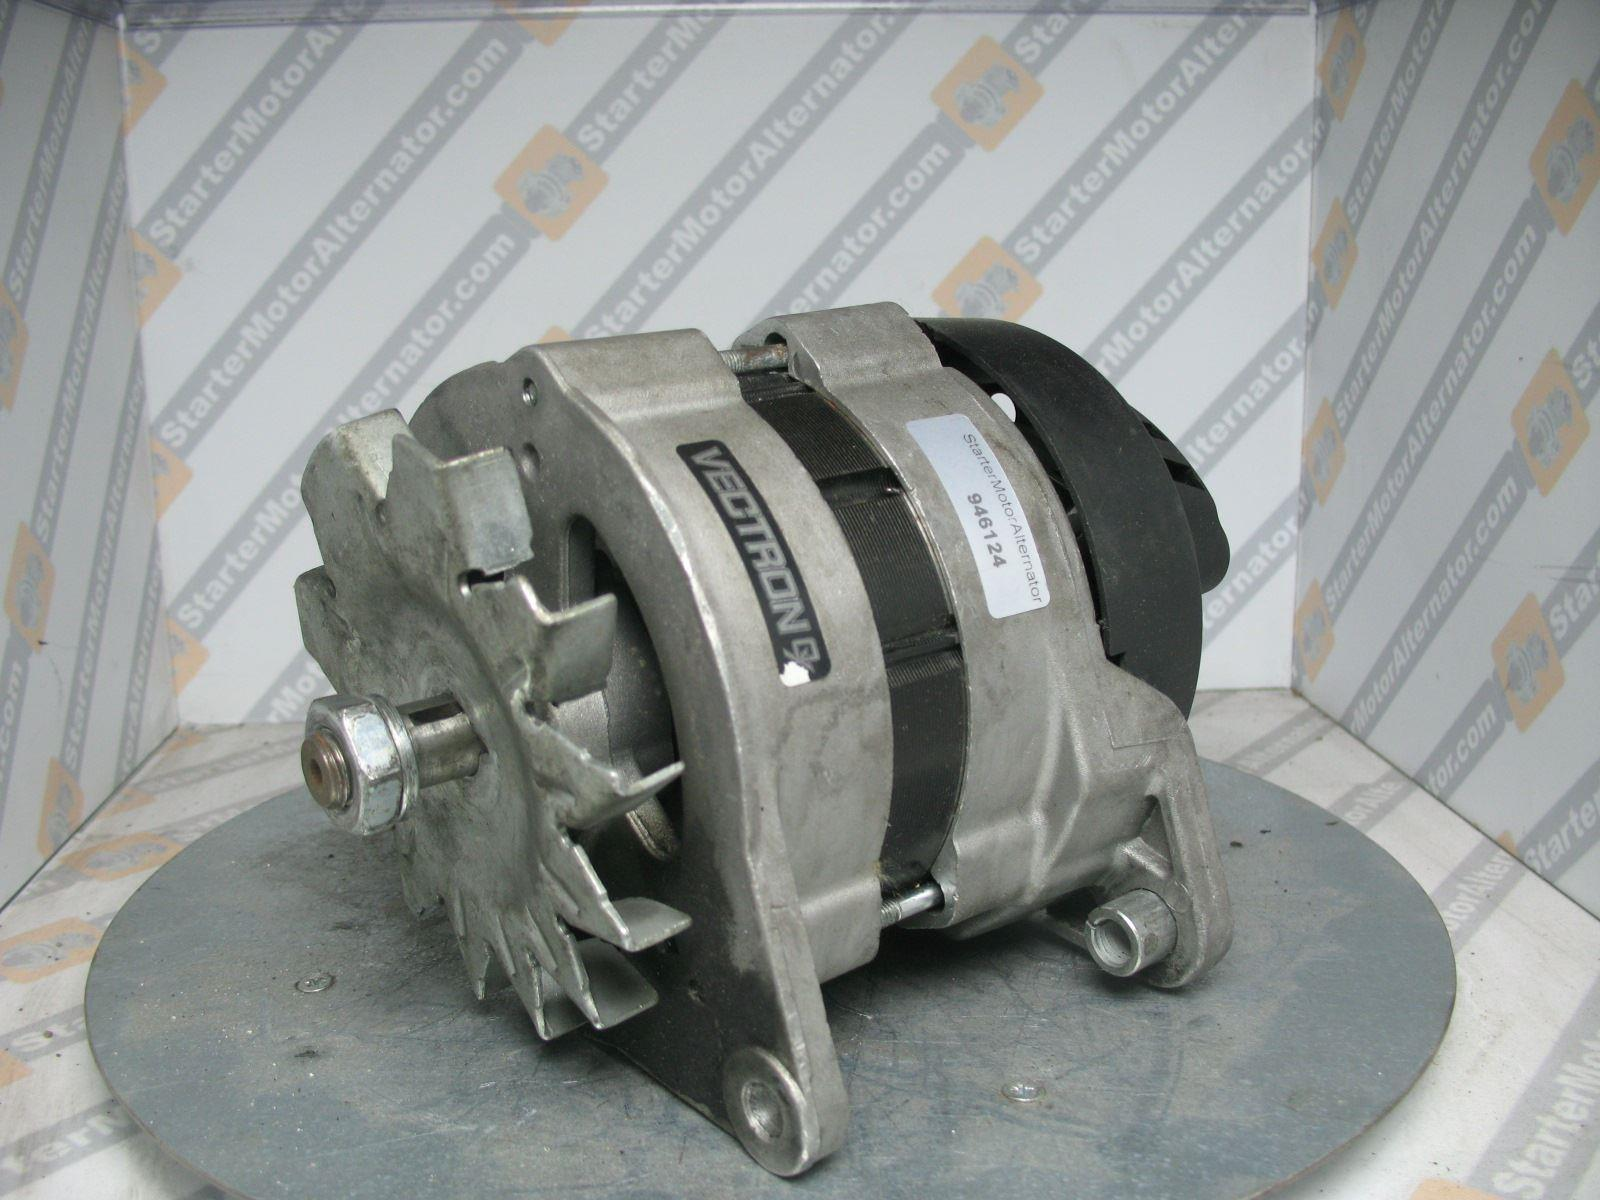 XIA1100 Alternator For Case / Deutz / Ford / Ford Truck/Tractor / JCB / Land Rover / Leyland / MG / Morgan / New Holland / Reliant / Rover / Triumph